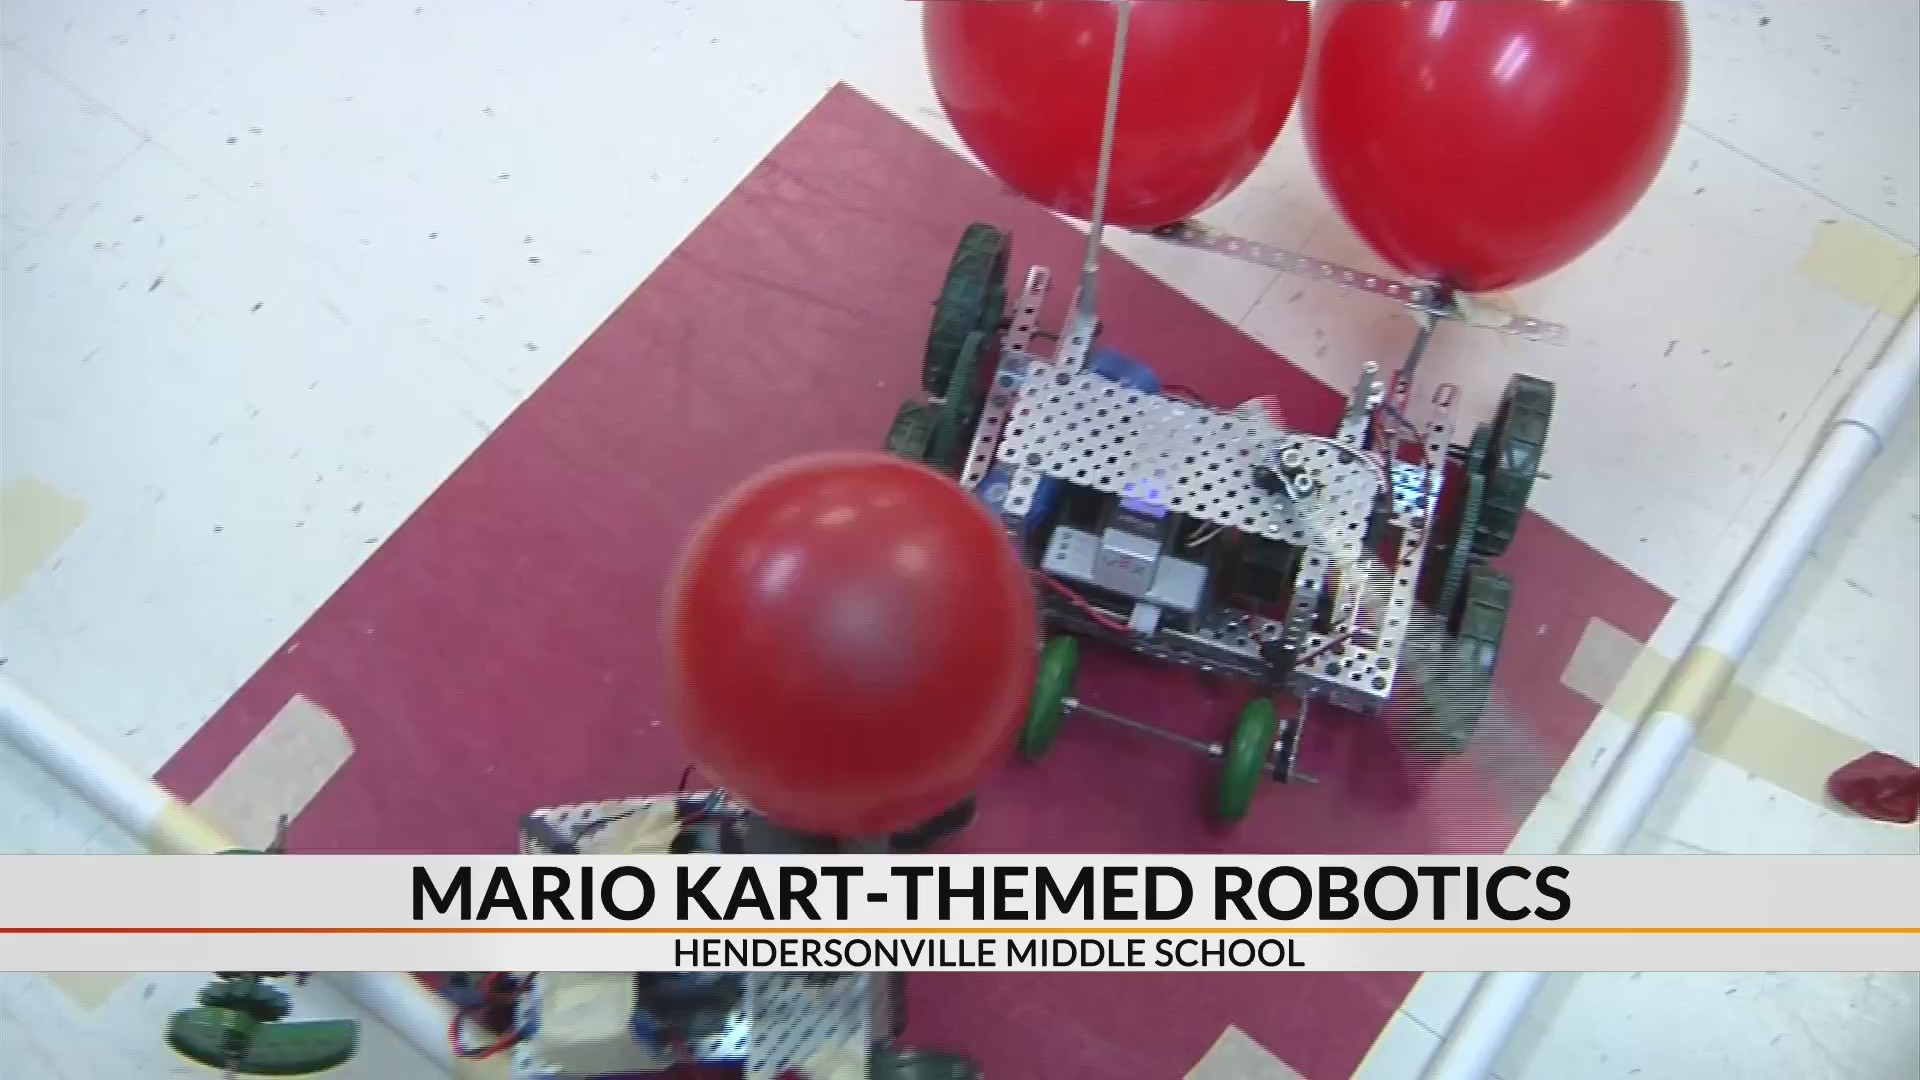 Mario-Kart themed robotics competition inspires Henderson Co. students